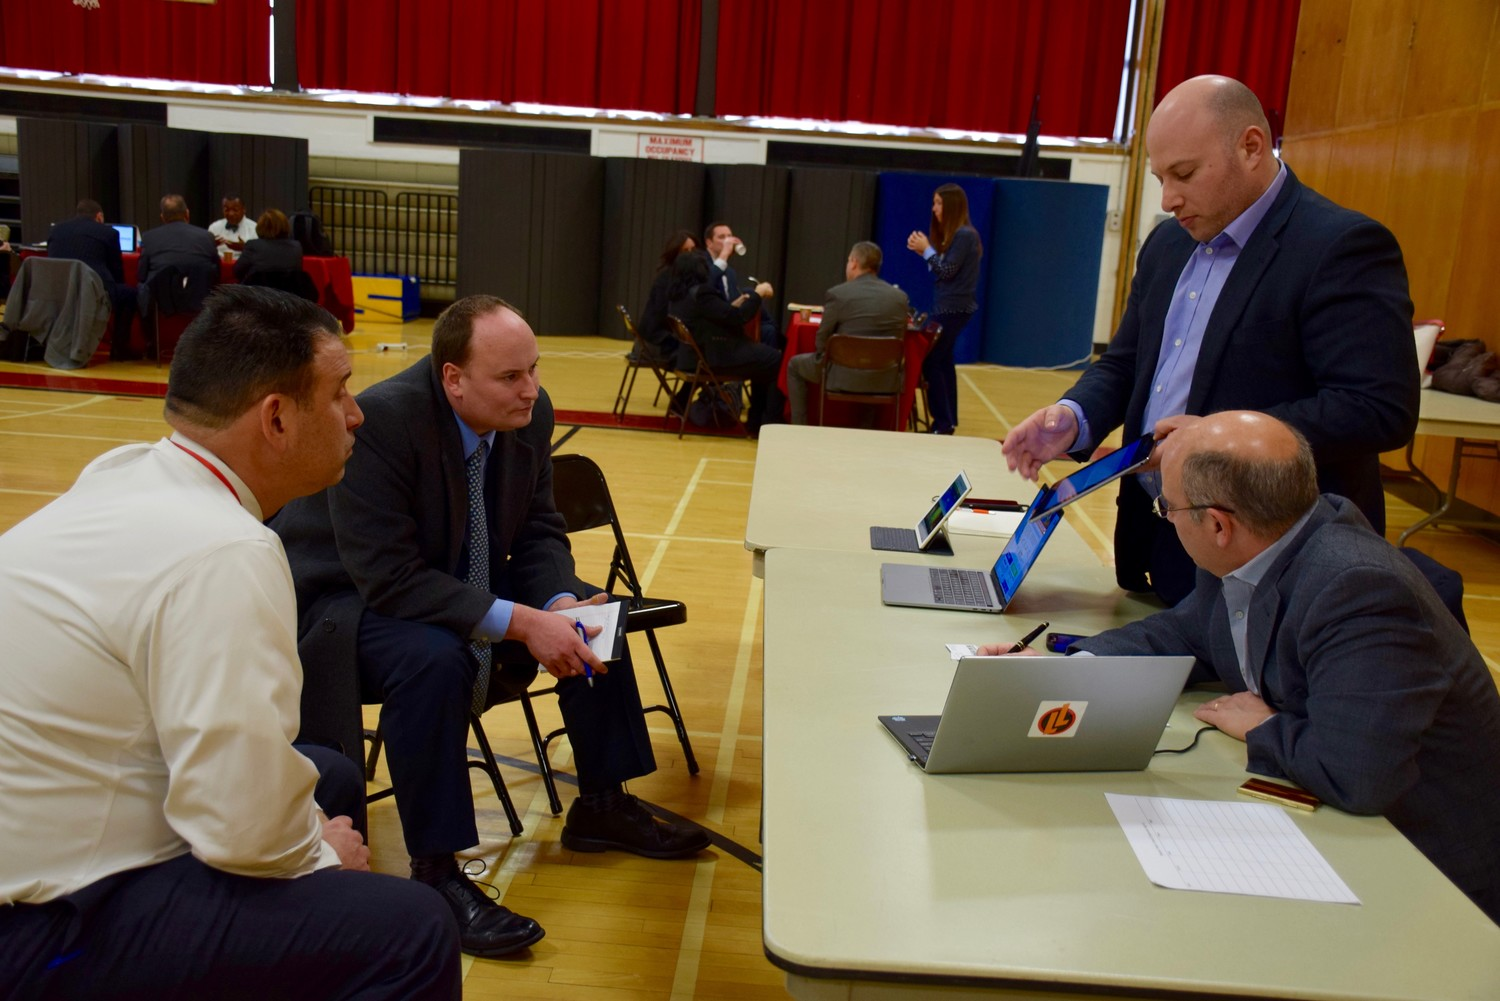 Josh Goldenberg of Legends of Learning, far right, spoke to Gerard Beleckas, Lynbrook's assistant superintendent for curriculum, instruction and assessment, second from left, and Plainedge Superintendent Dr. Edward Salina at a technology symposium at Levittown Memorial Education Center.